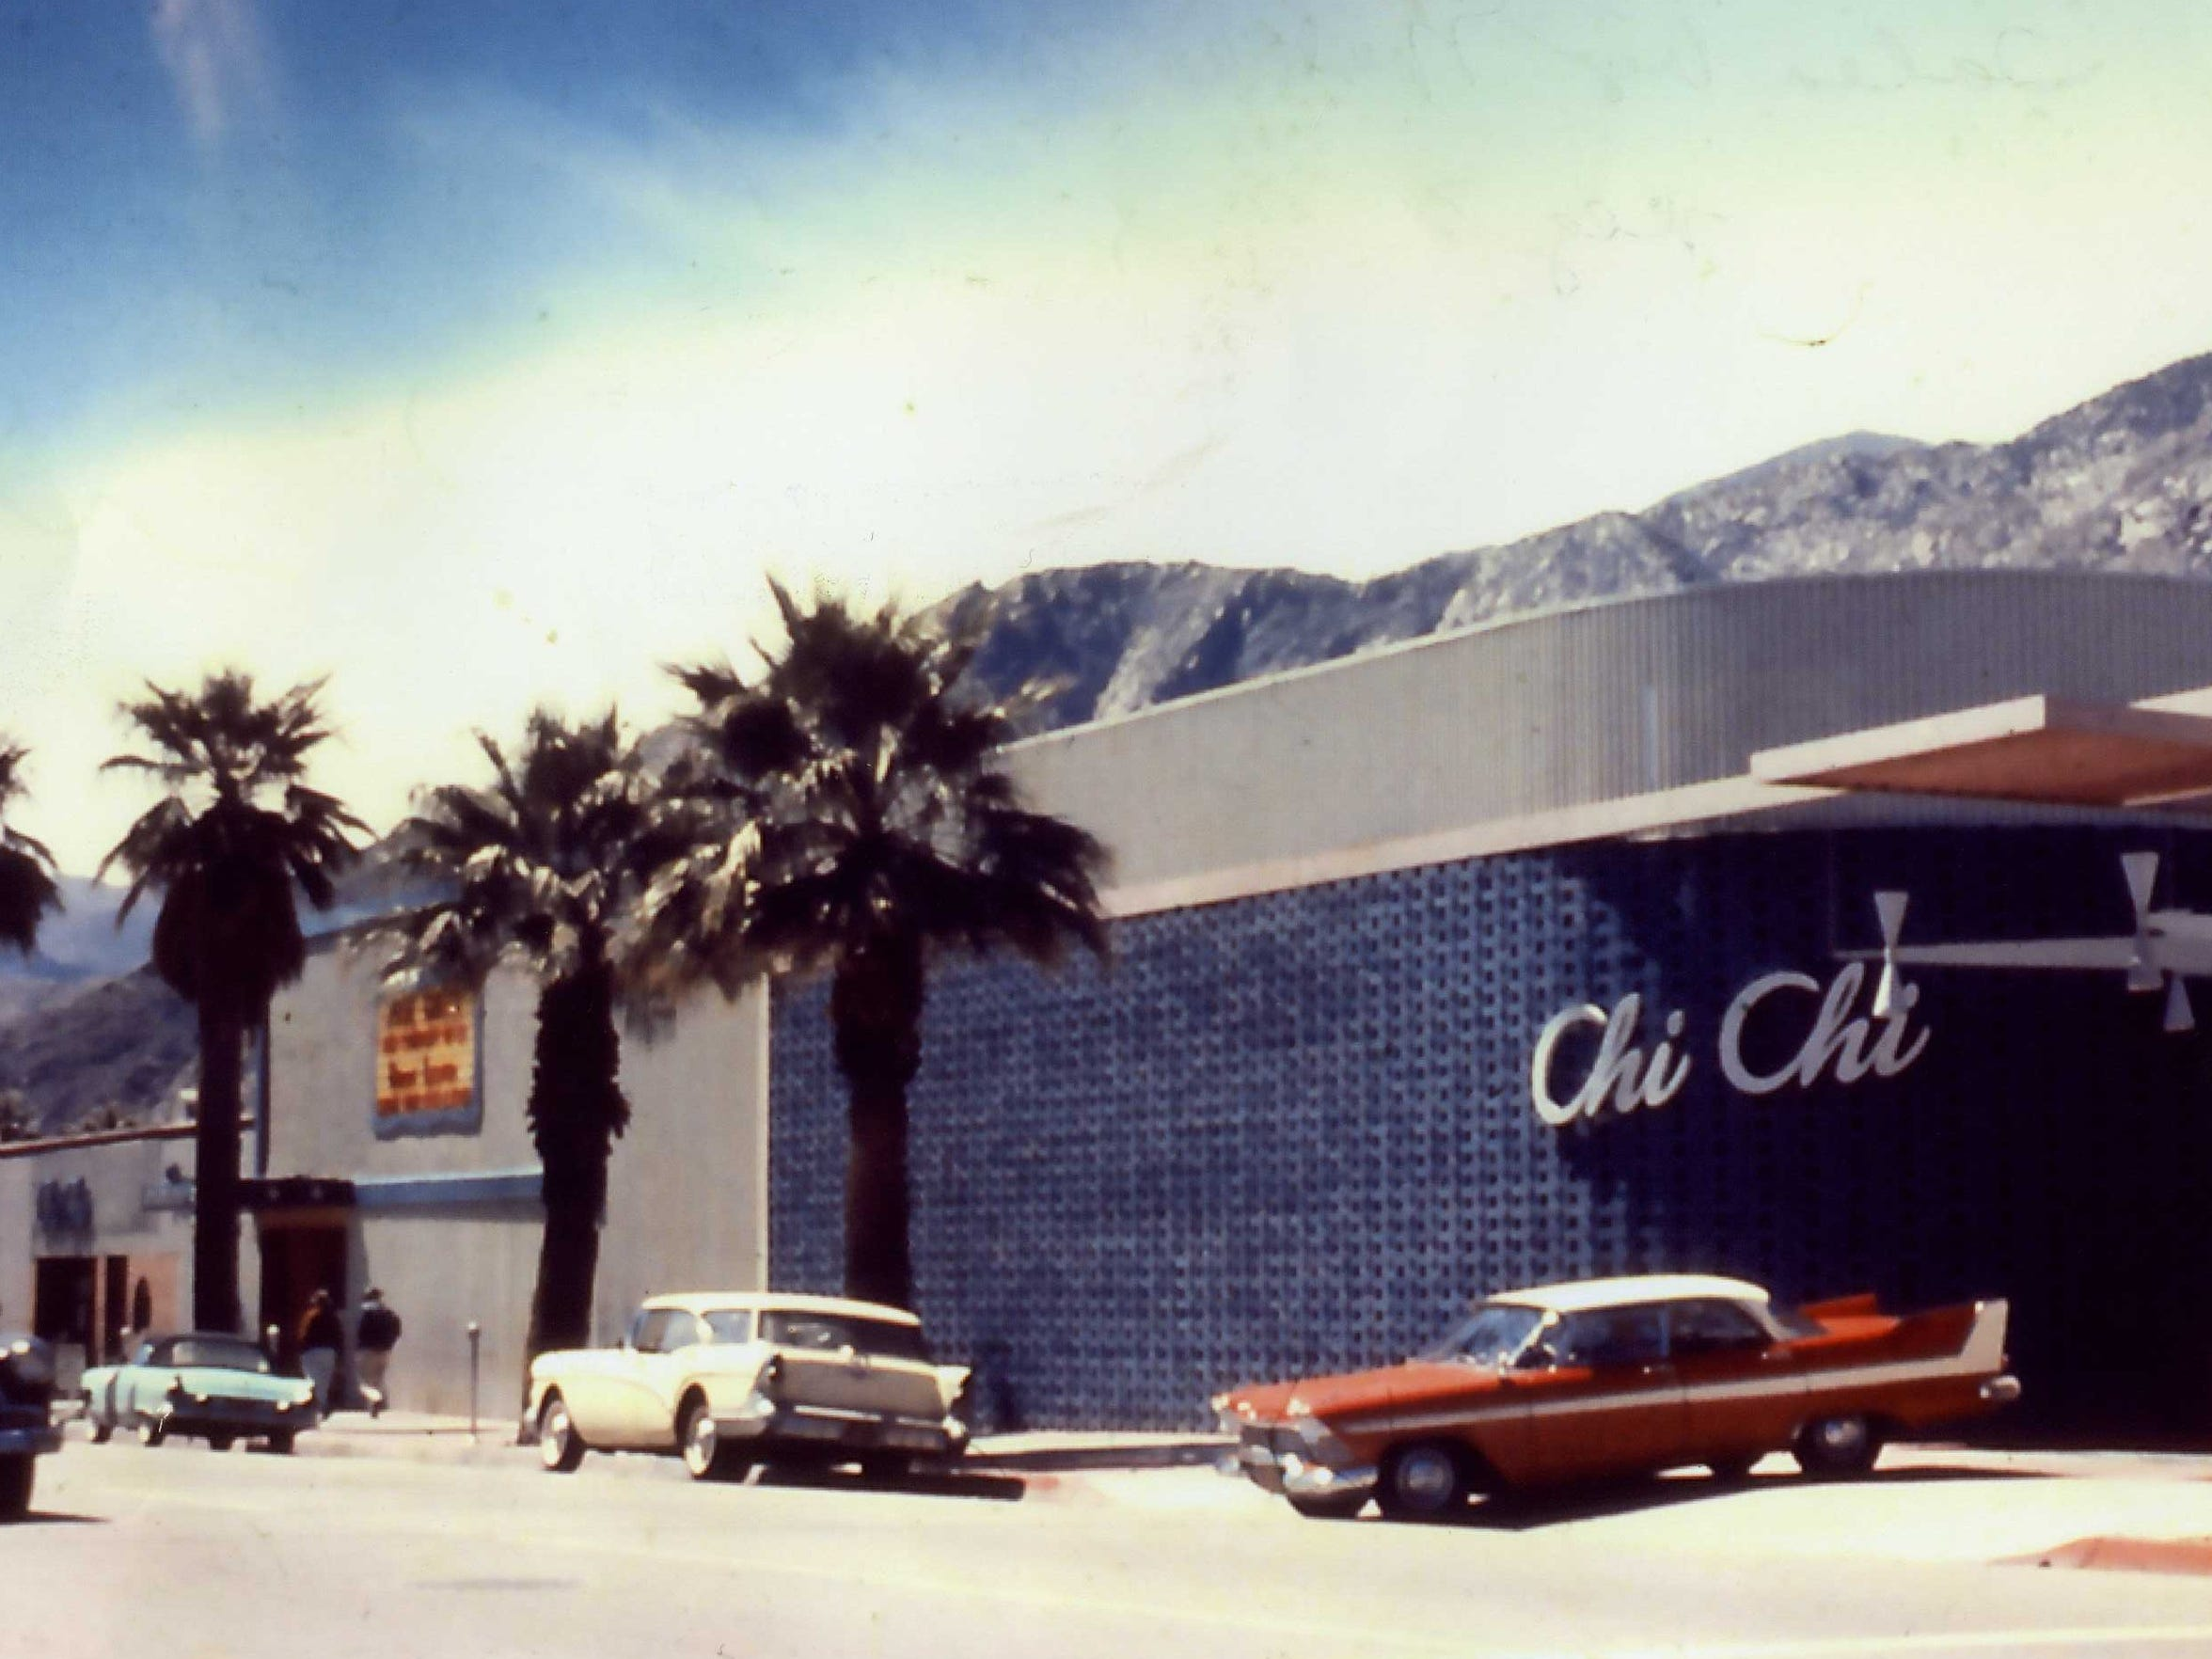 The exterior of the Chi Chi as pictured in the 1950s.